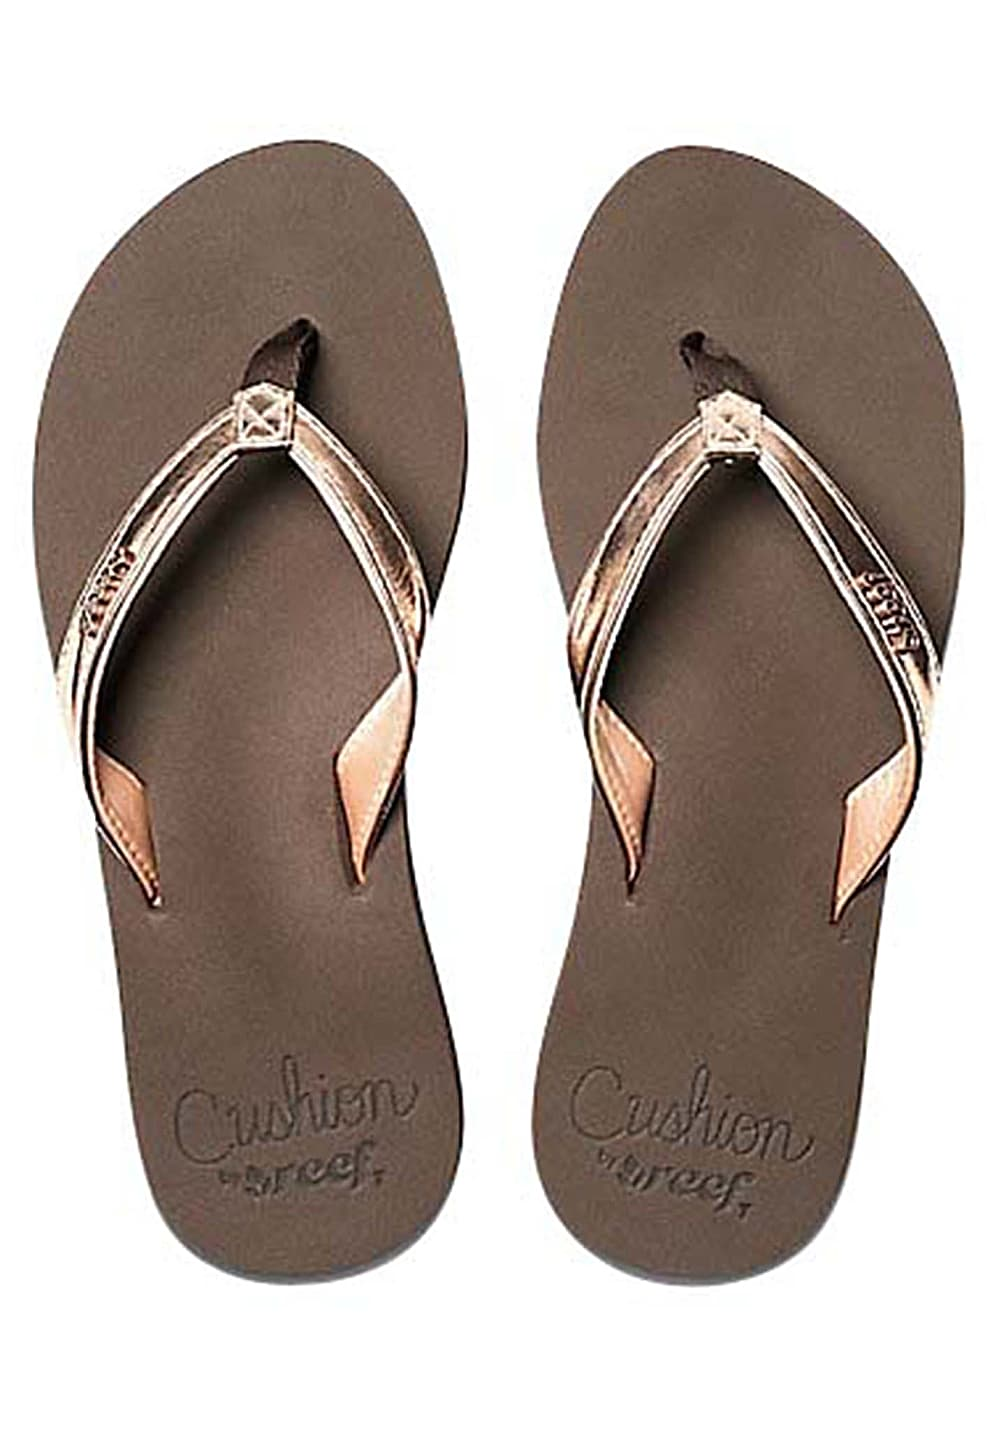 Reef Cushion Luna - Sandalen für Damen Pink